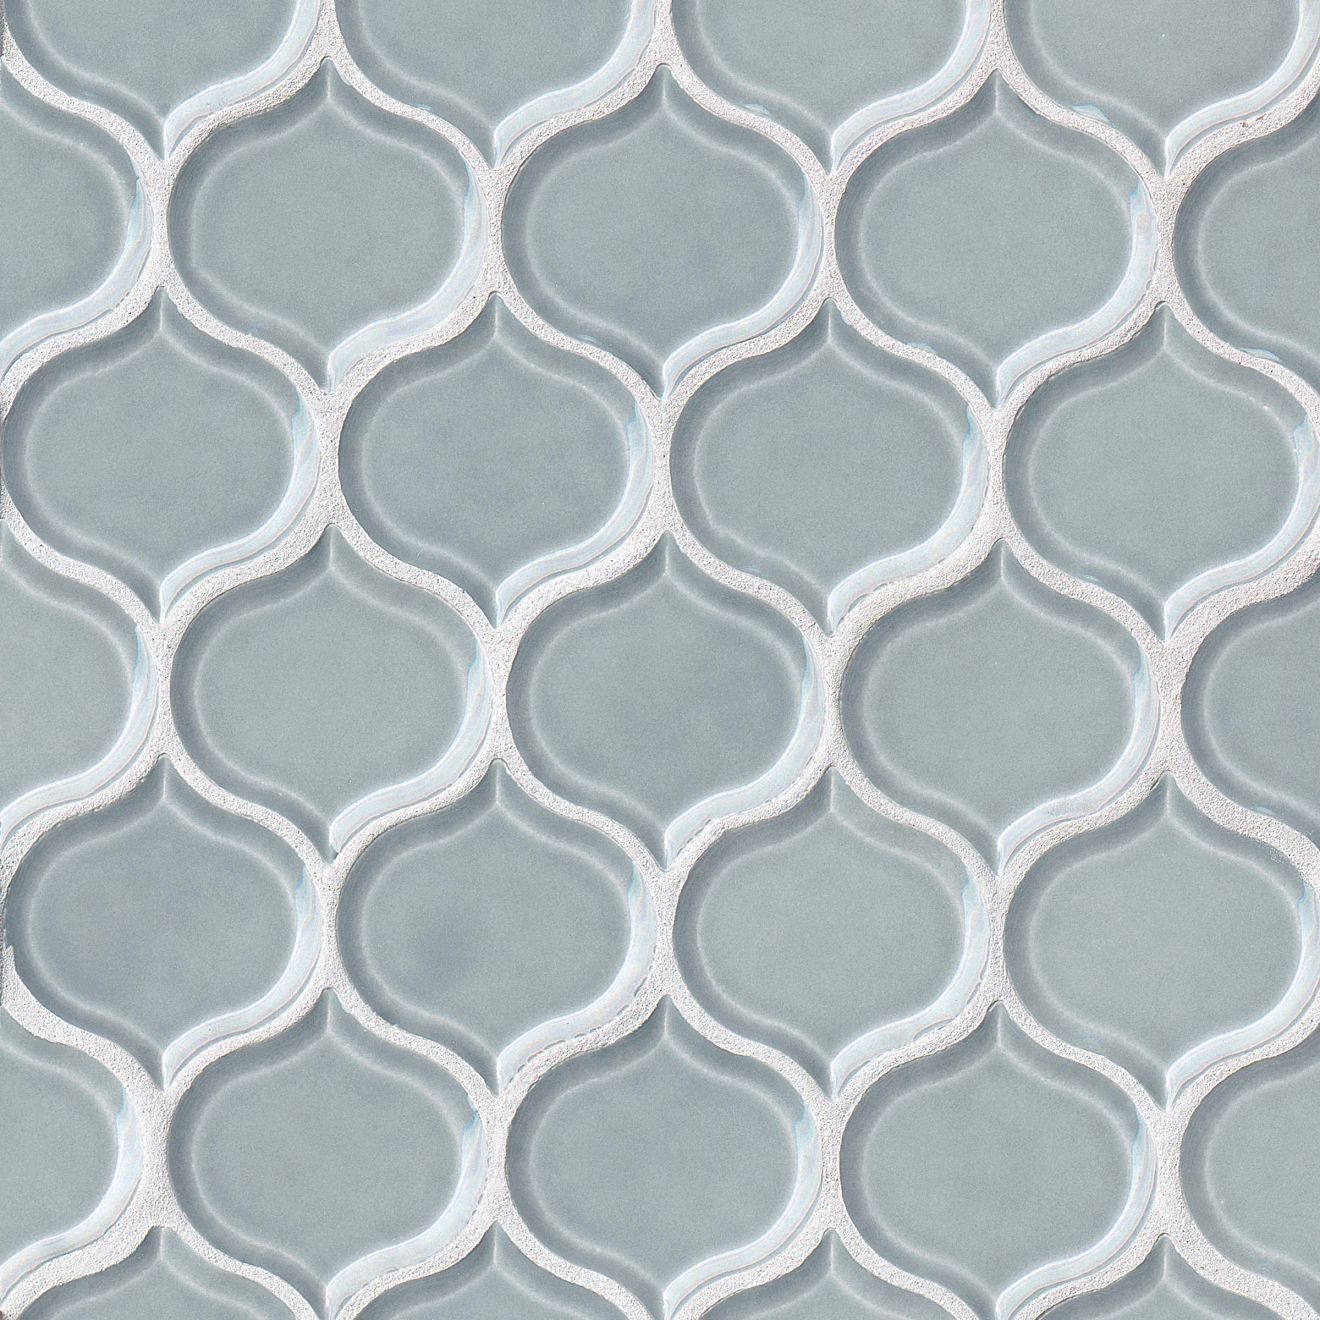 """Provincetown 3-1/16"""" x 2-7/8"""" Wall Mosaic in Surfside Blue"""